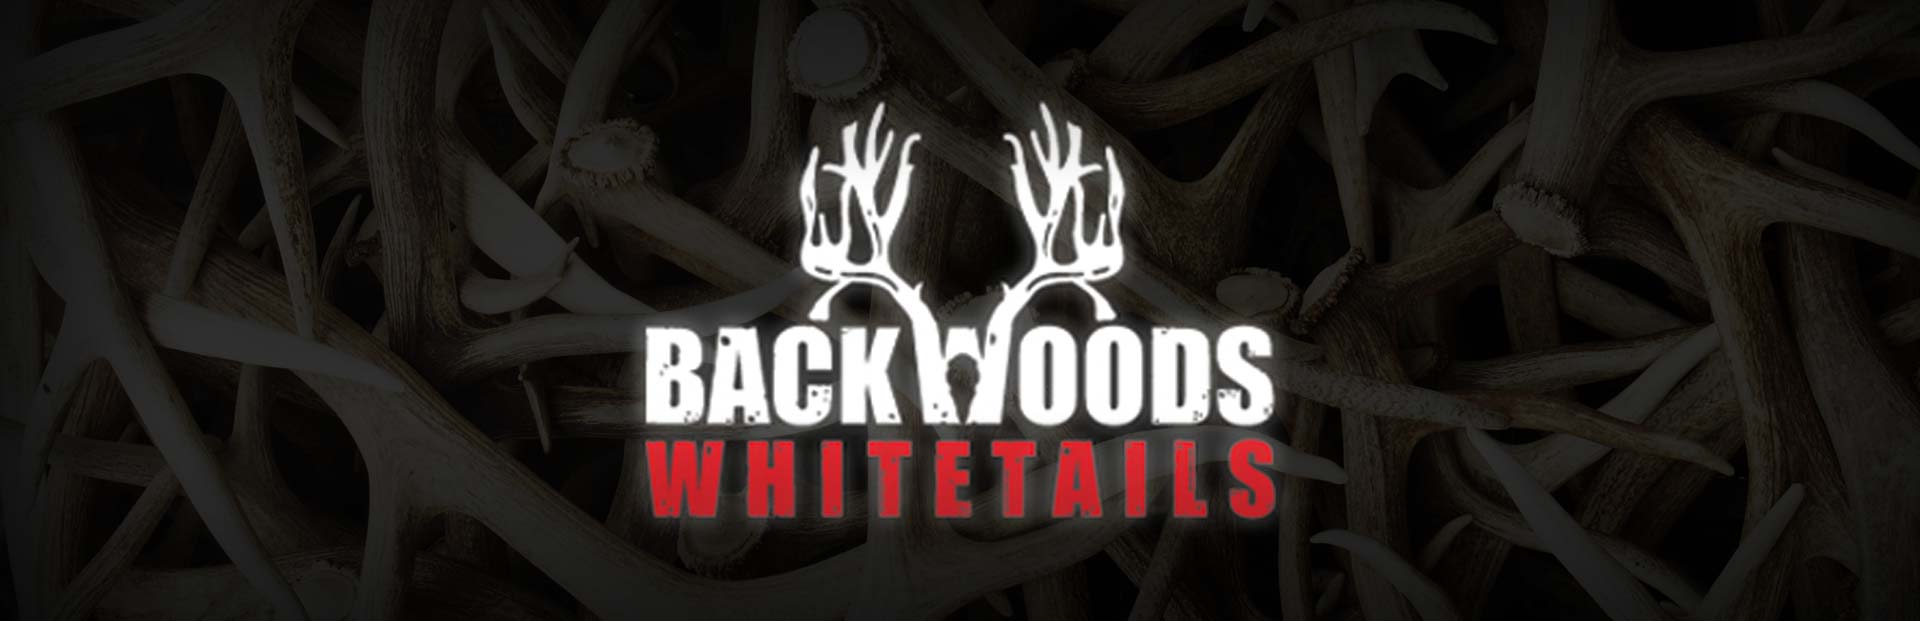 About Backwoods Whitetails